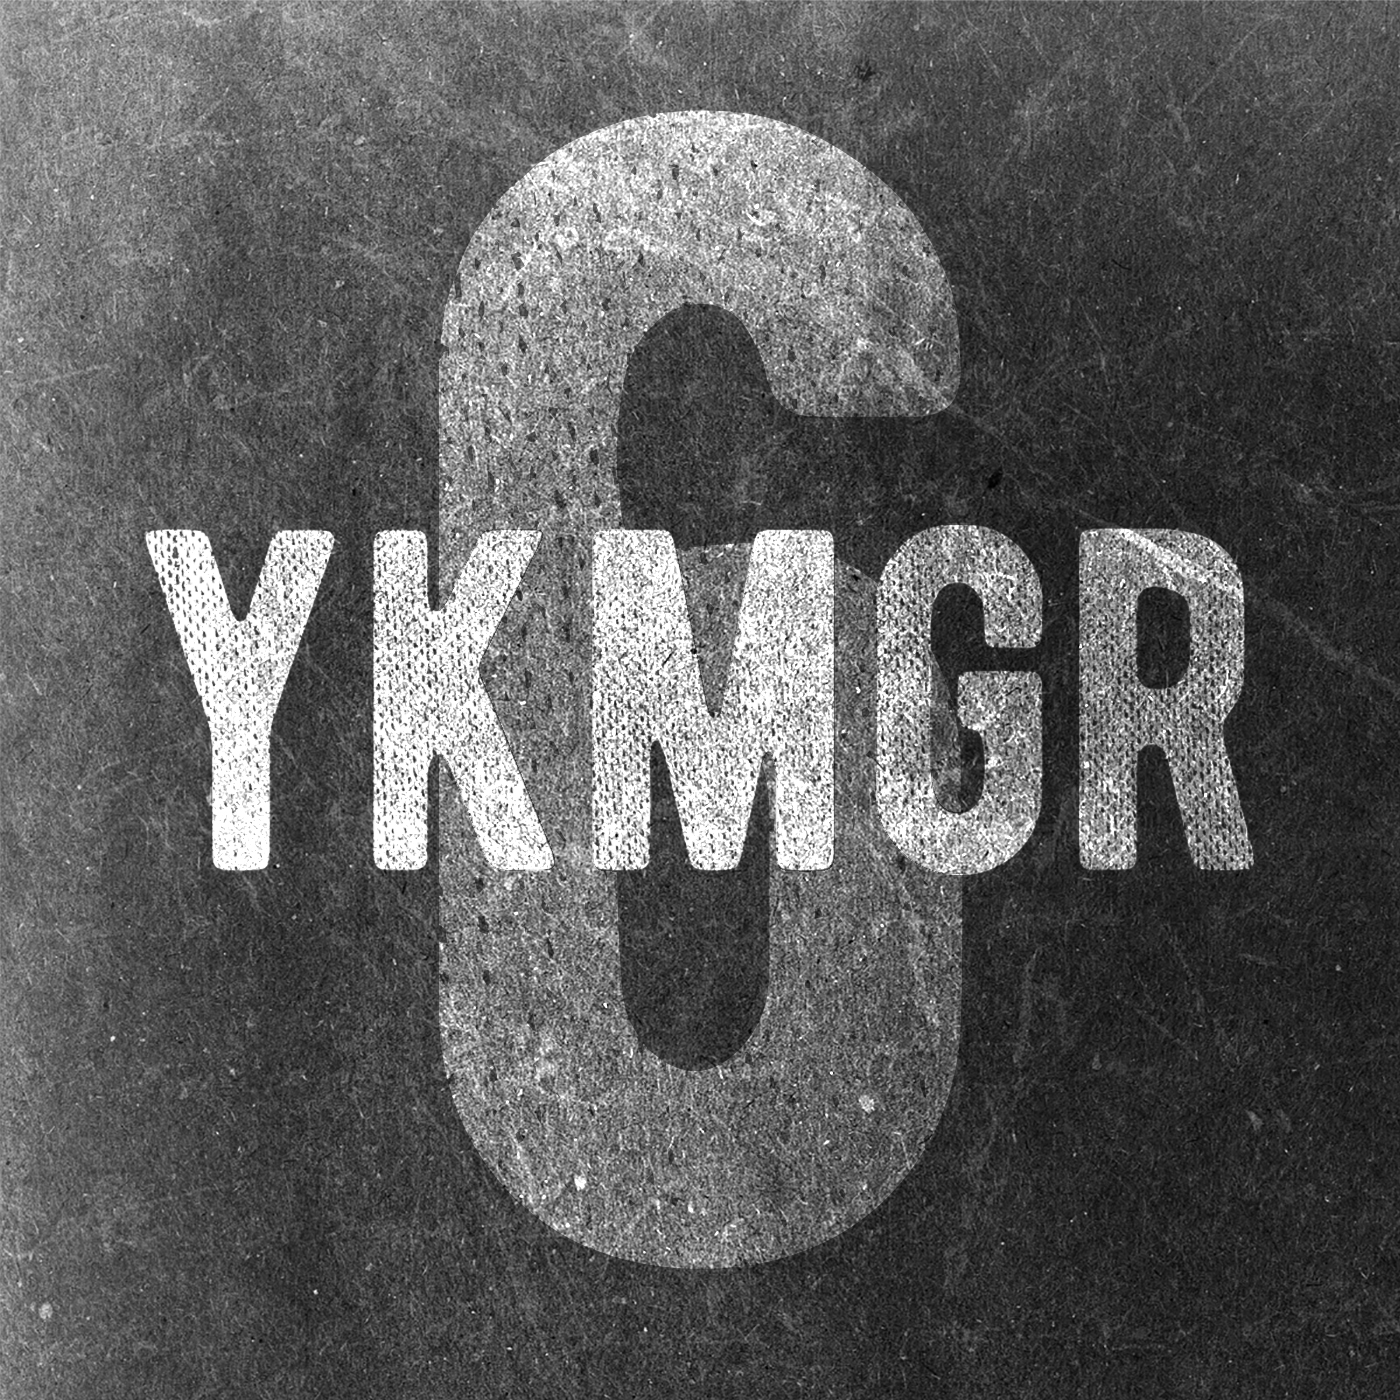 YKMGR 06.png